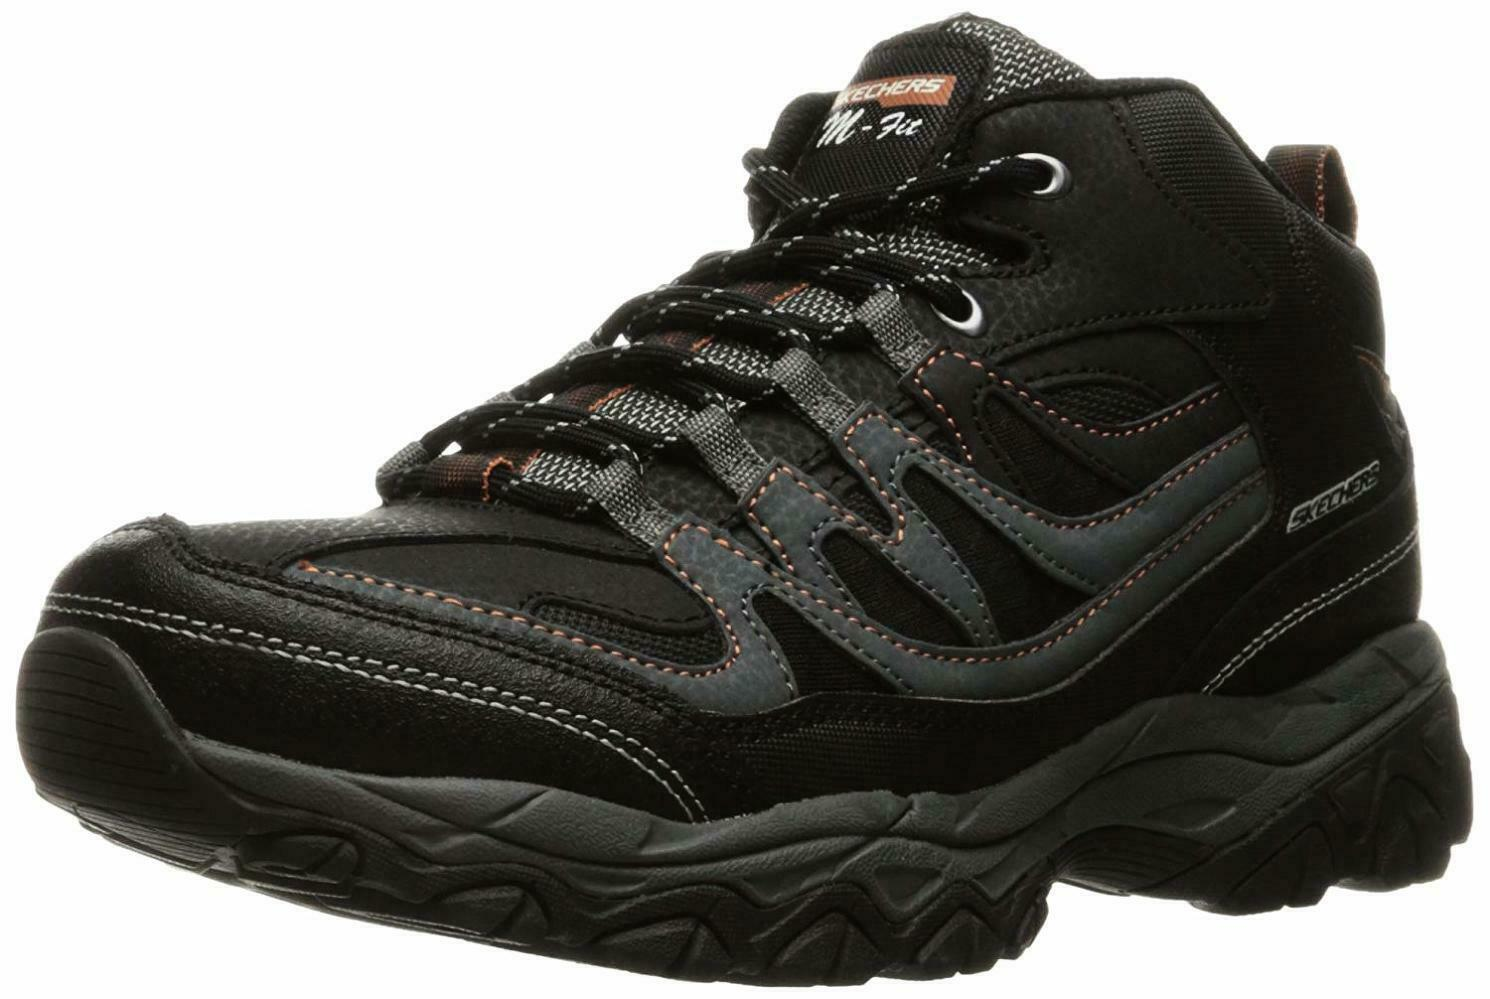 Skechers Sport Homme Afterburn M. Fit Mi-haute Turnchaussures-Choisir Taille Couleur